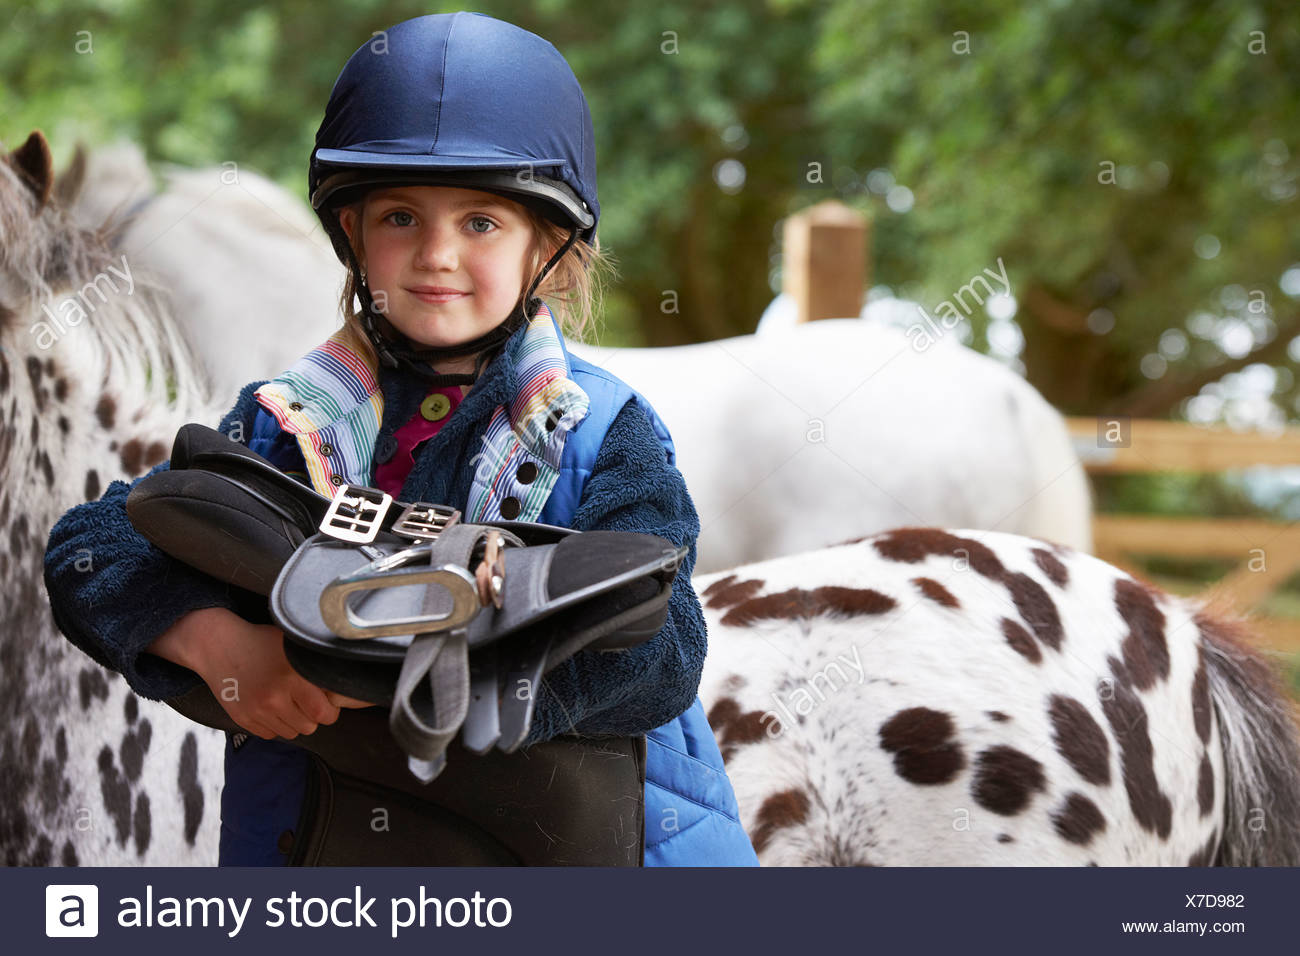 Young girl holding a saddle with ponies - Stock Image